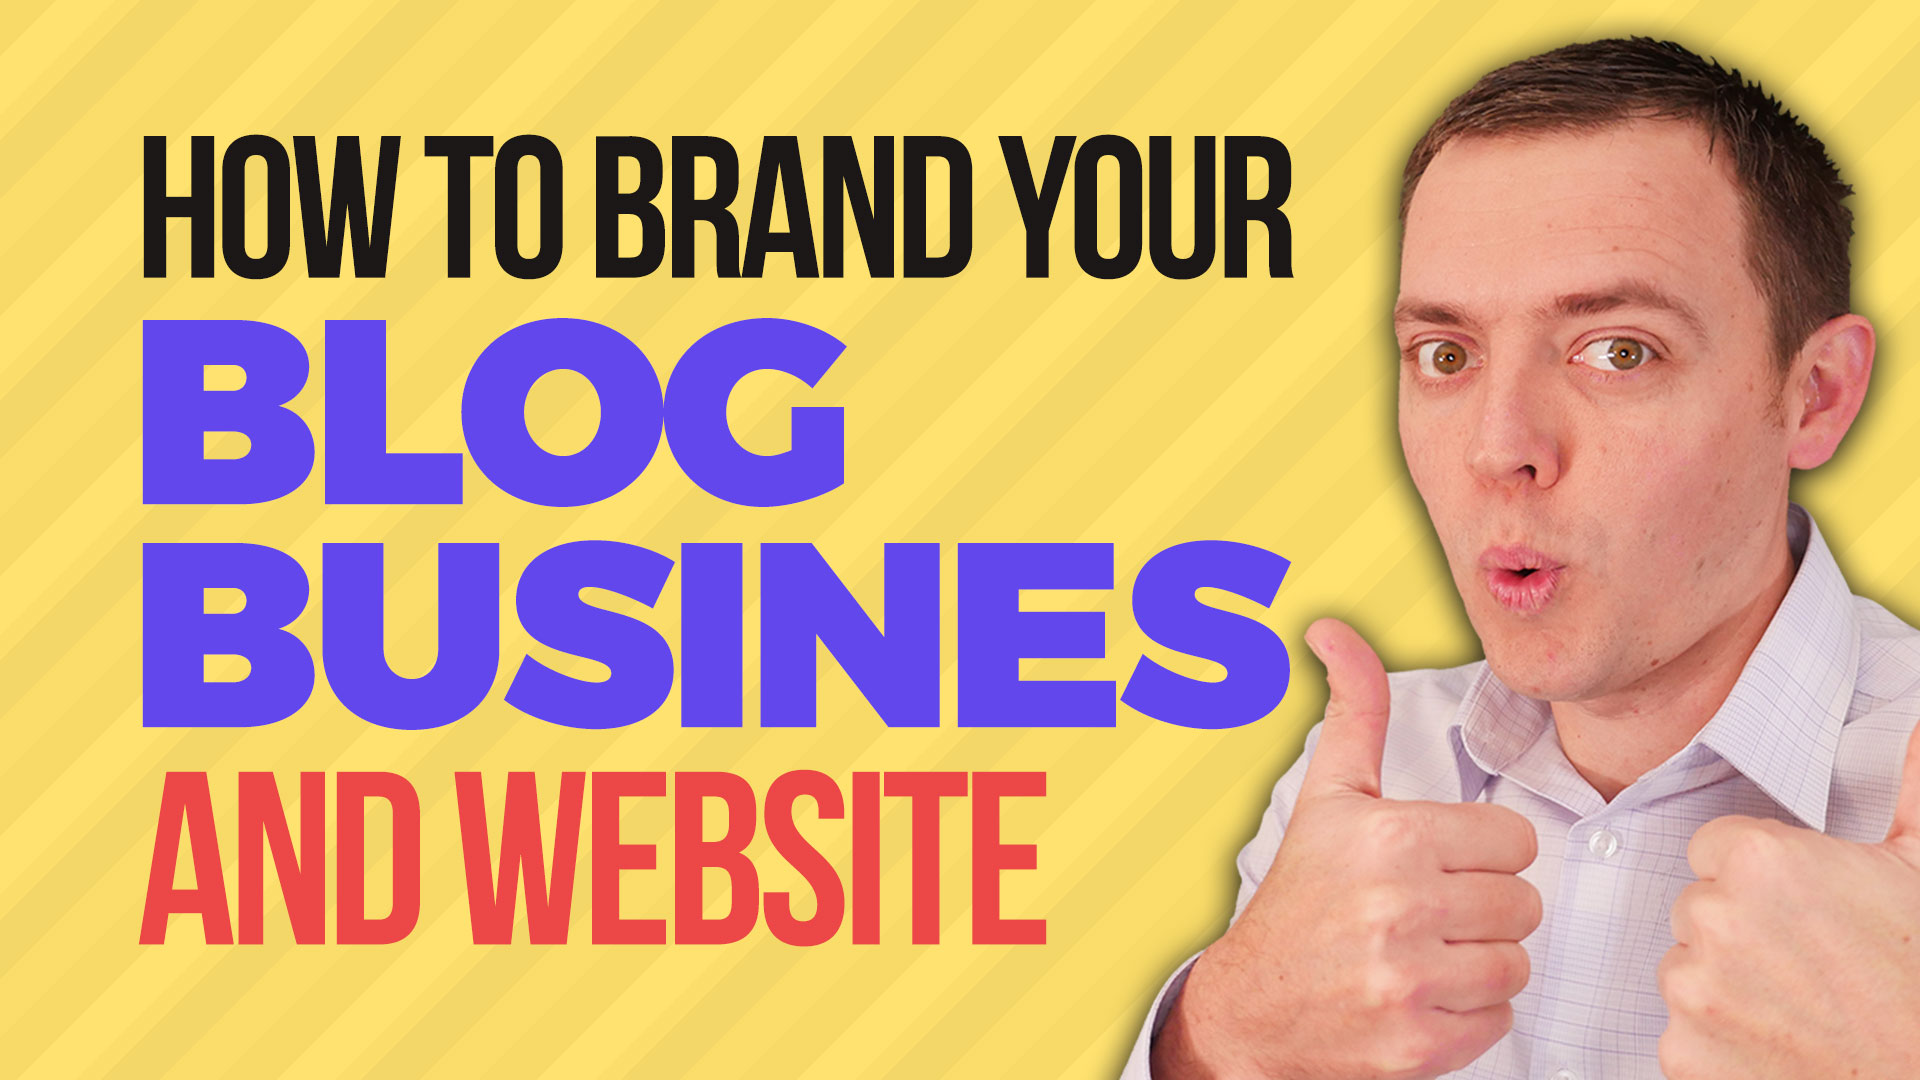 How to Brand Your Blog Business & Website